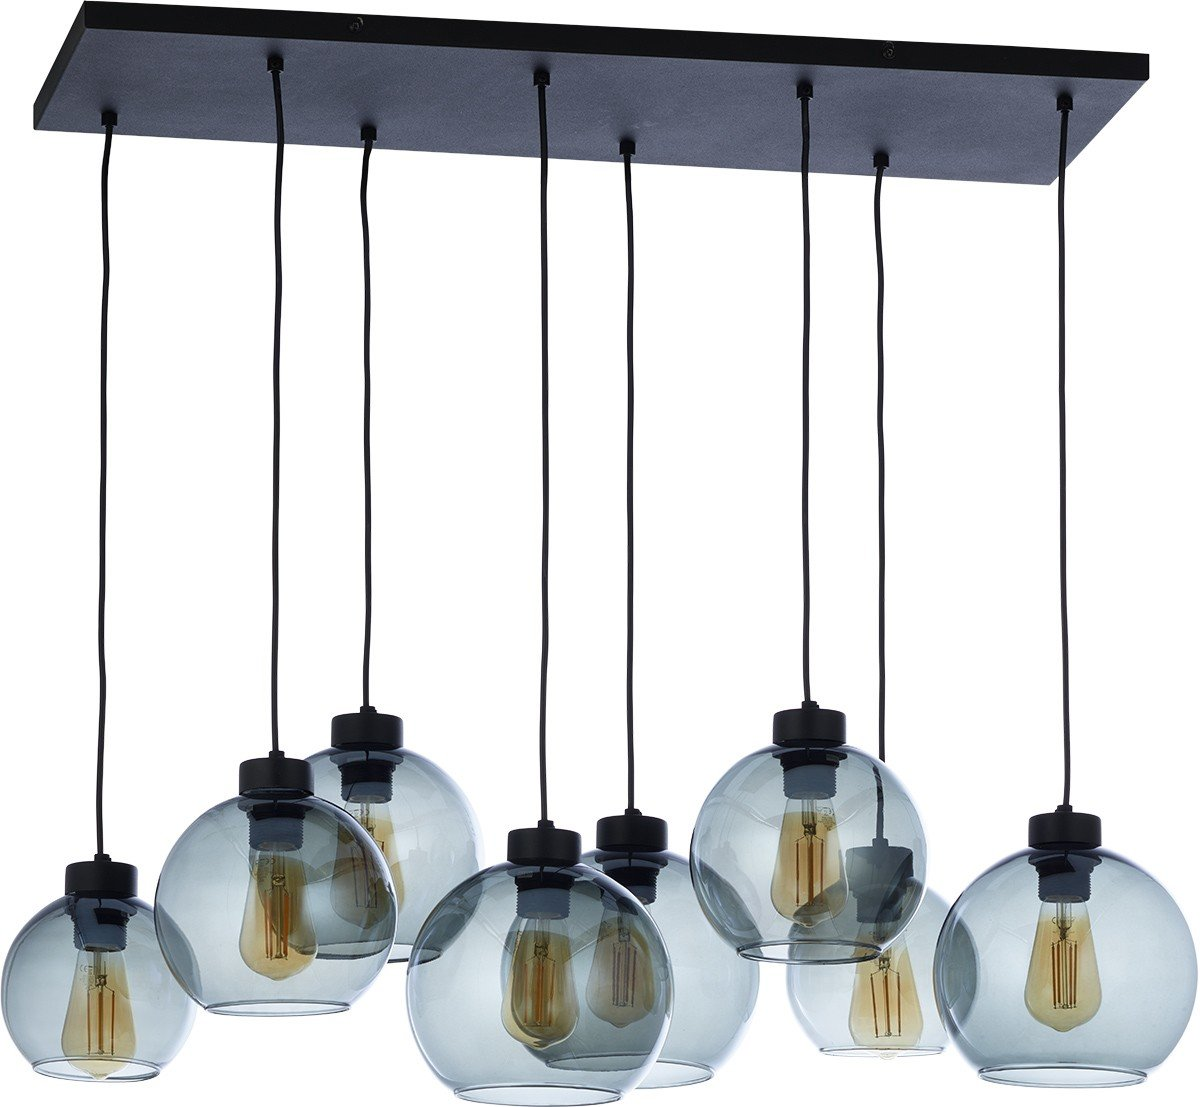 Подвес TK Lighting 4113 Cubus Graphite